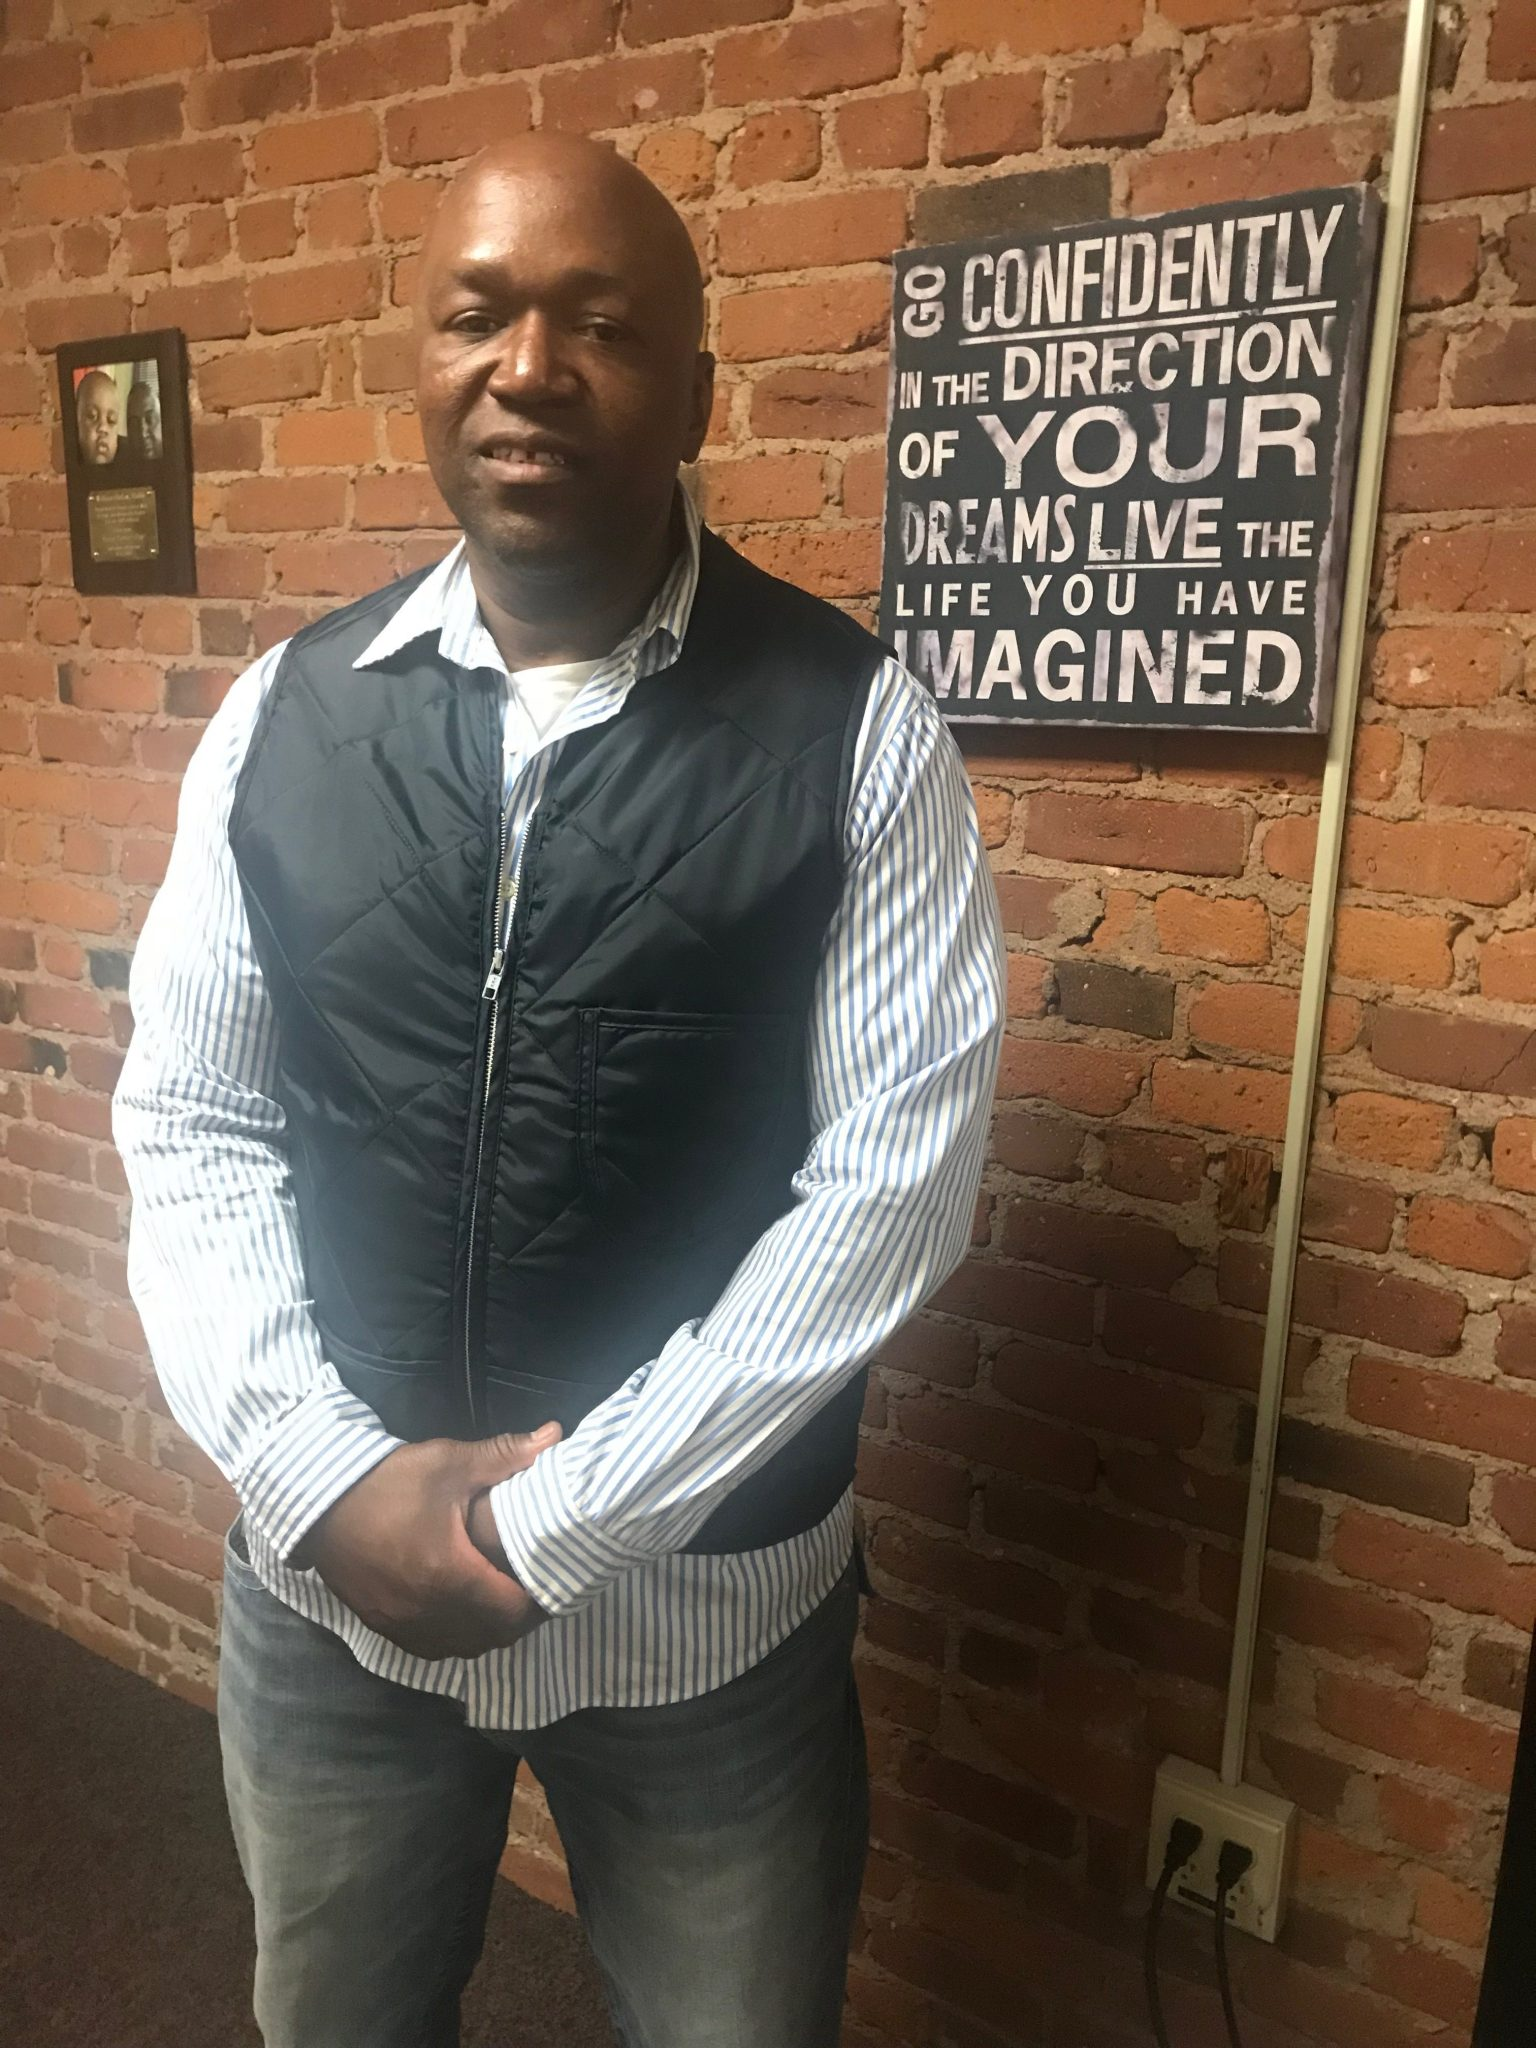 From prison to business owner!